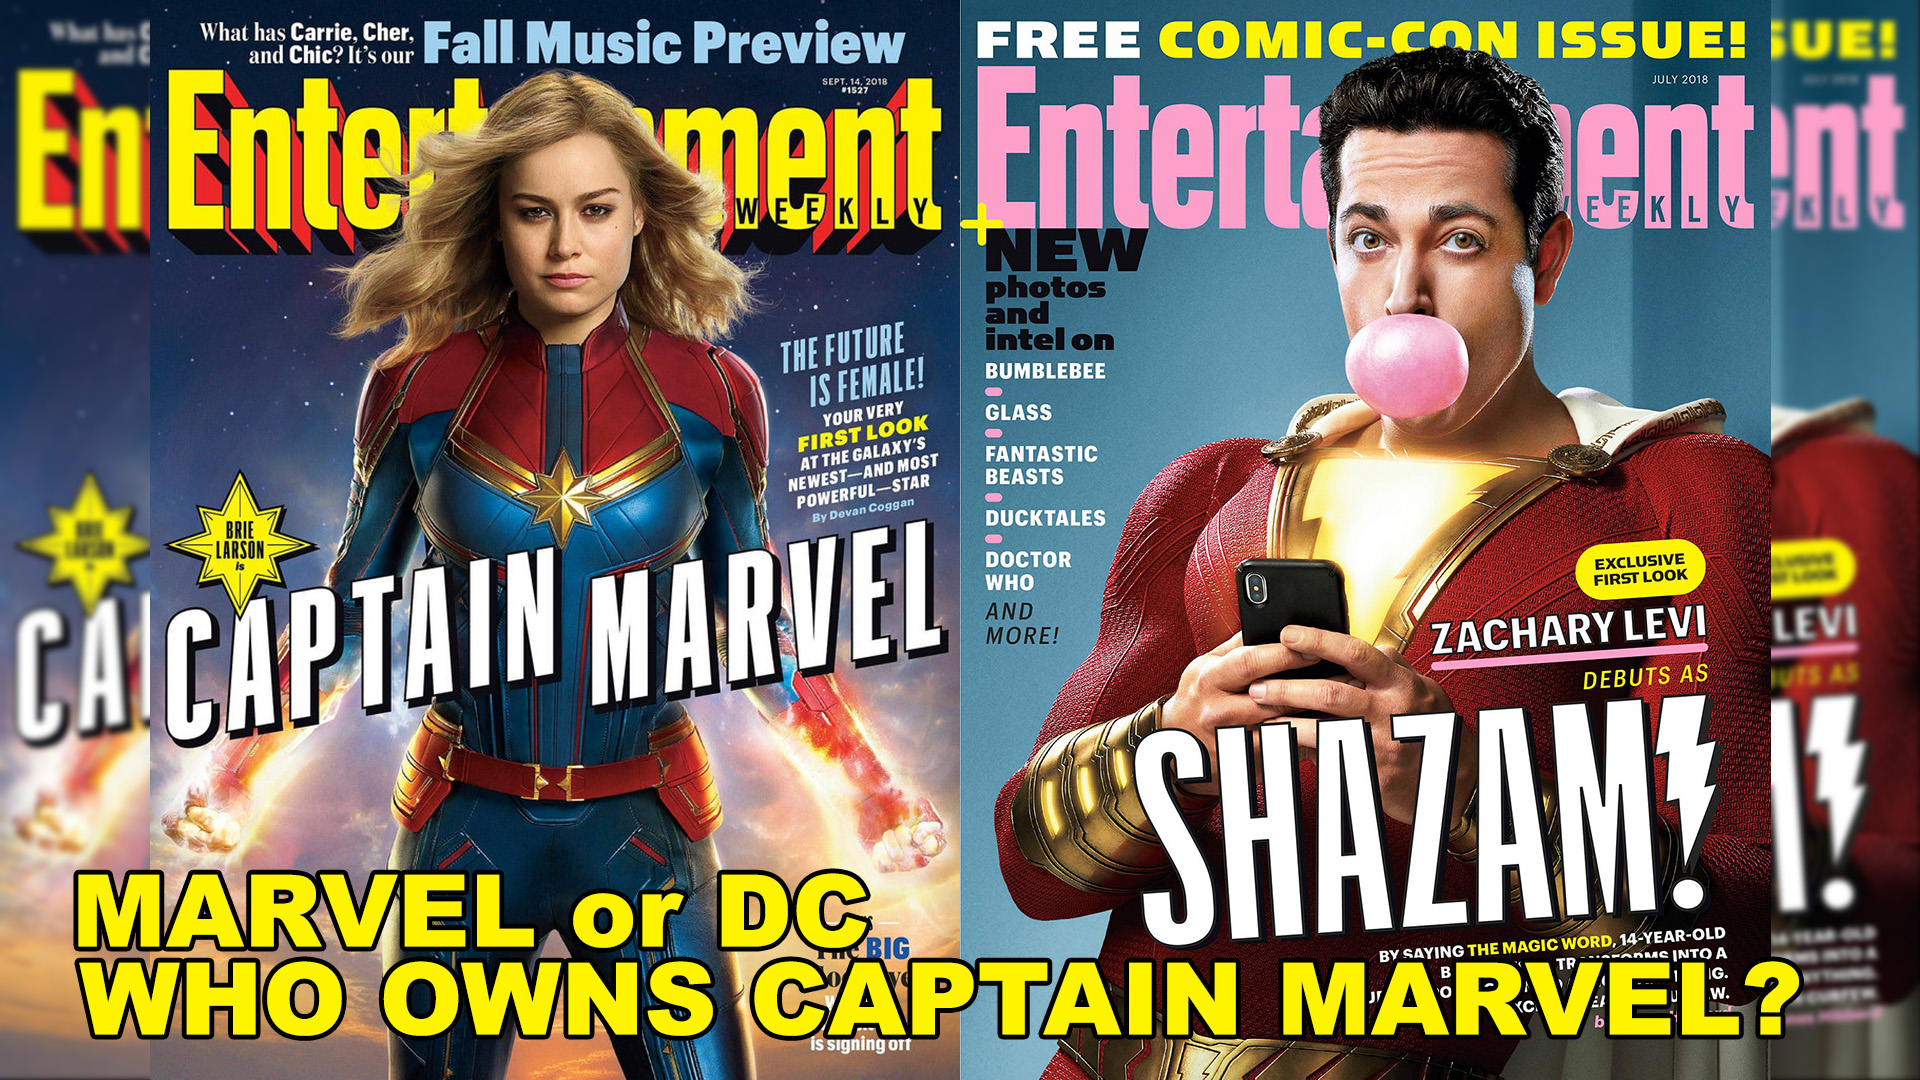 Video: Who Owns Captain Marvel? Marvel or DC